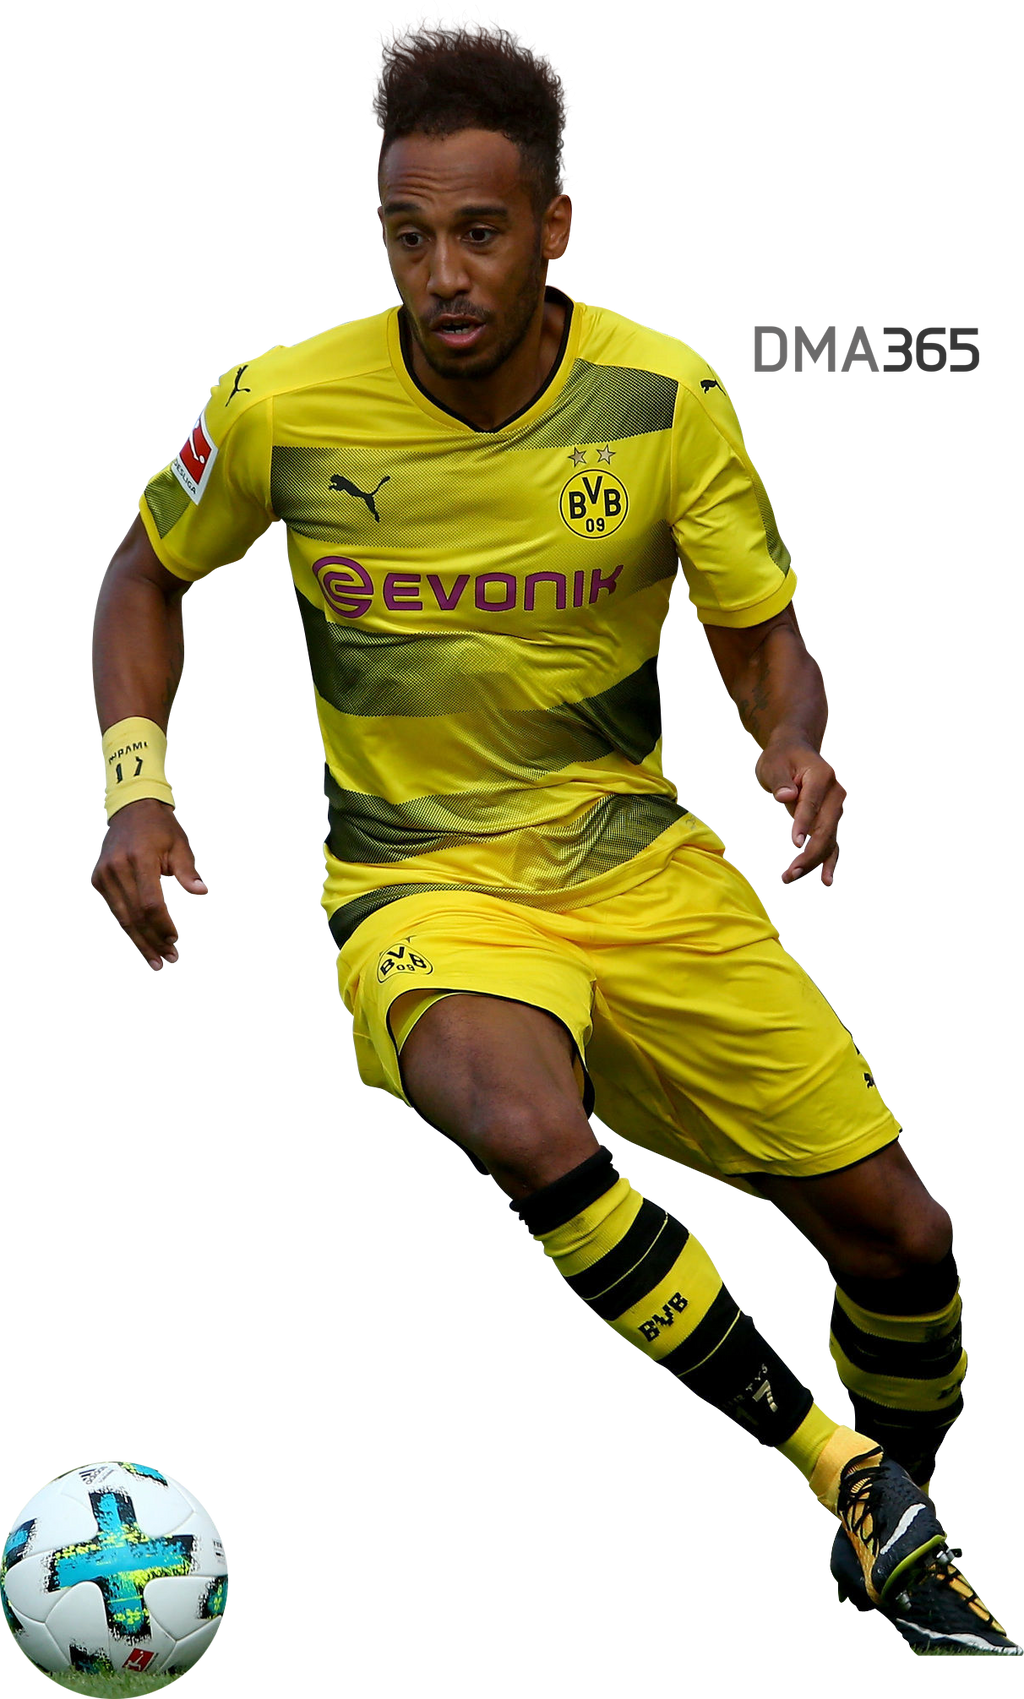 Pierre Emerick Aubameyang by dma365 on DeviantArt